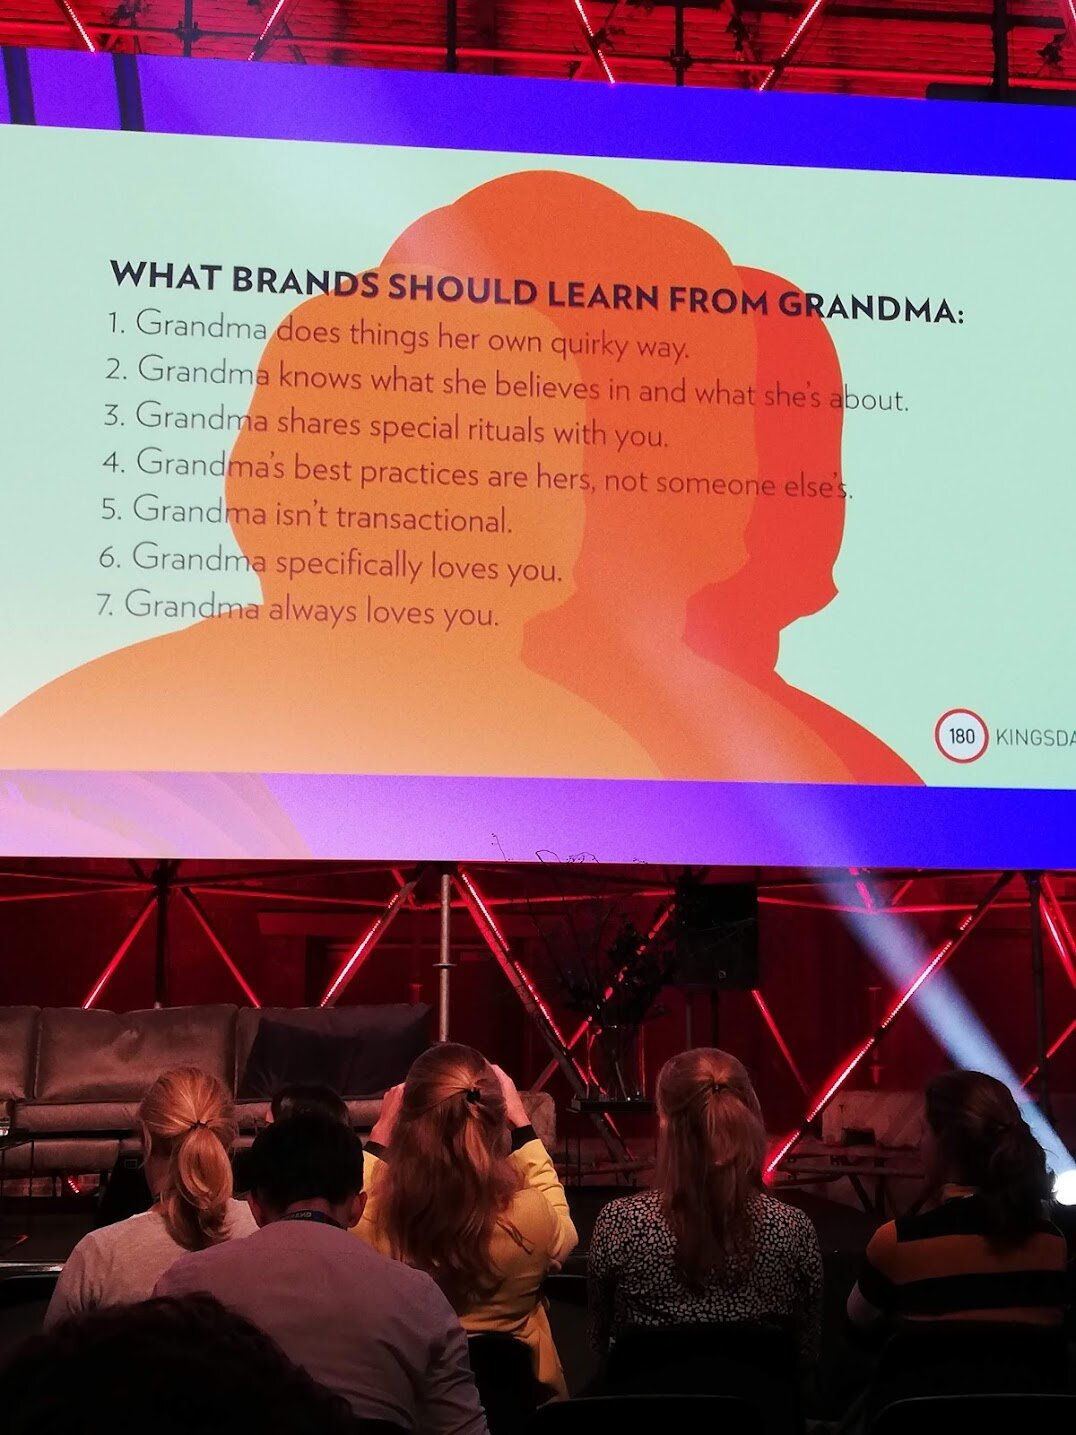 What brands could learn from your grandma. Epic analogy by 180 Kingsday